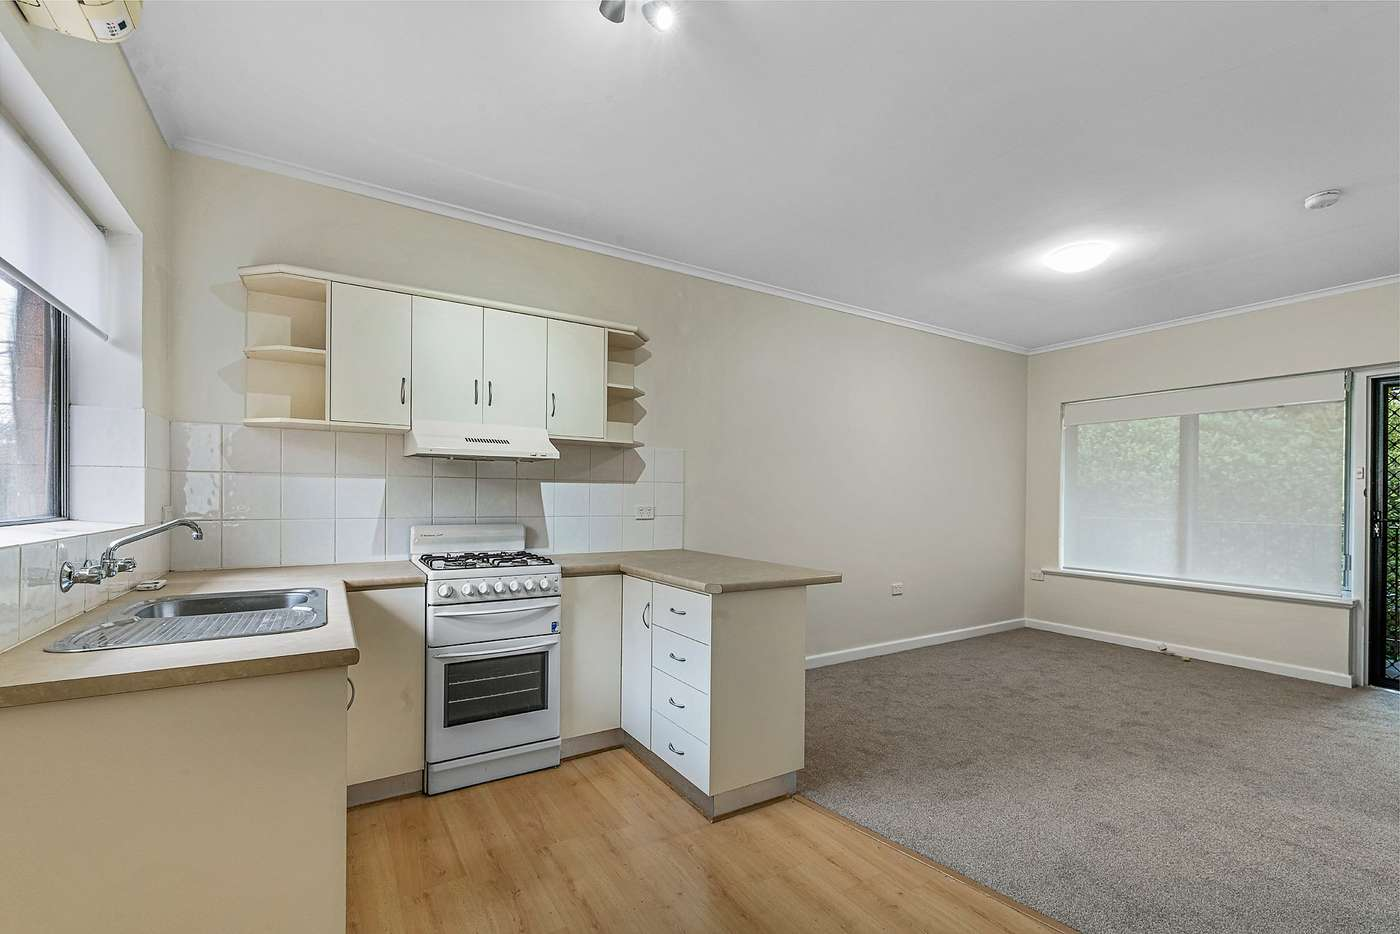 Sixth view of Homely unit listing, Unit 8/1A Hartland Avenue, Black Forest SA 5035